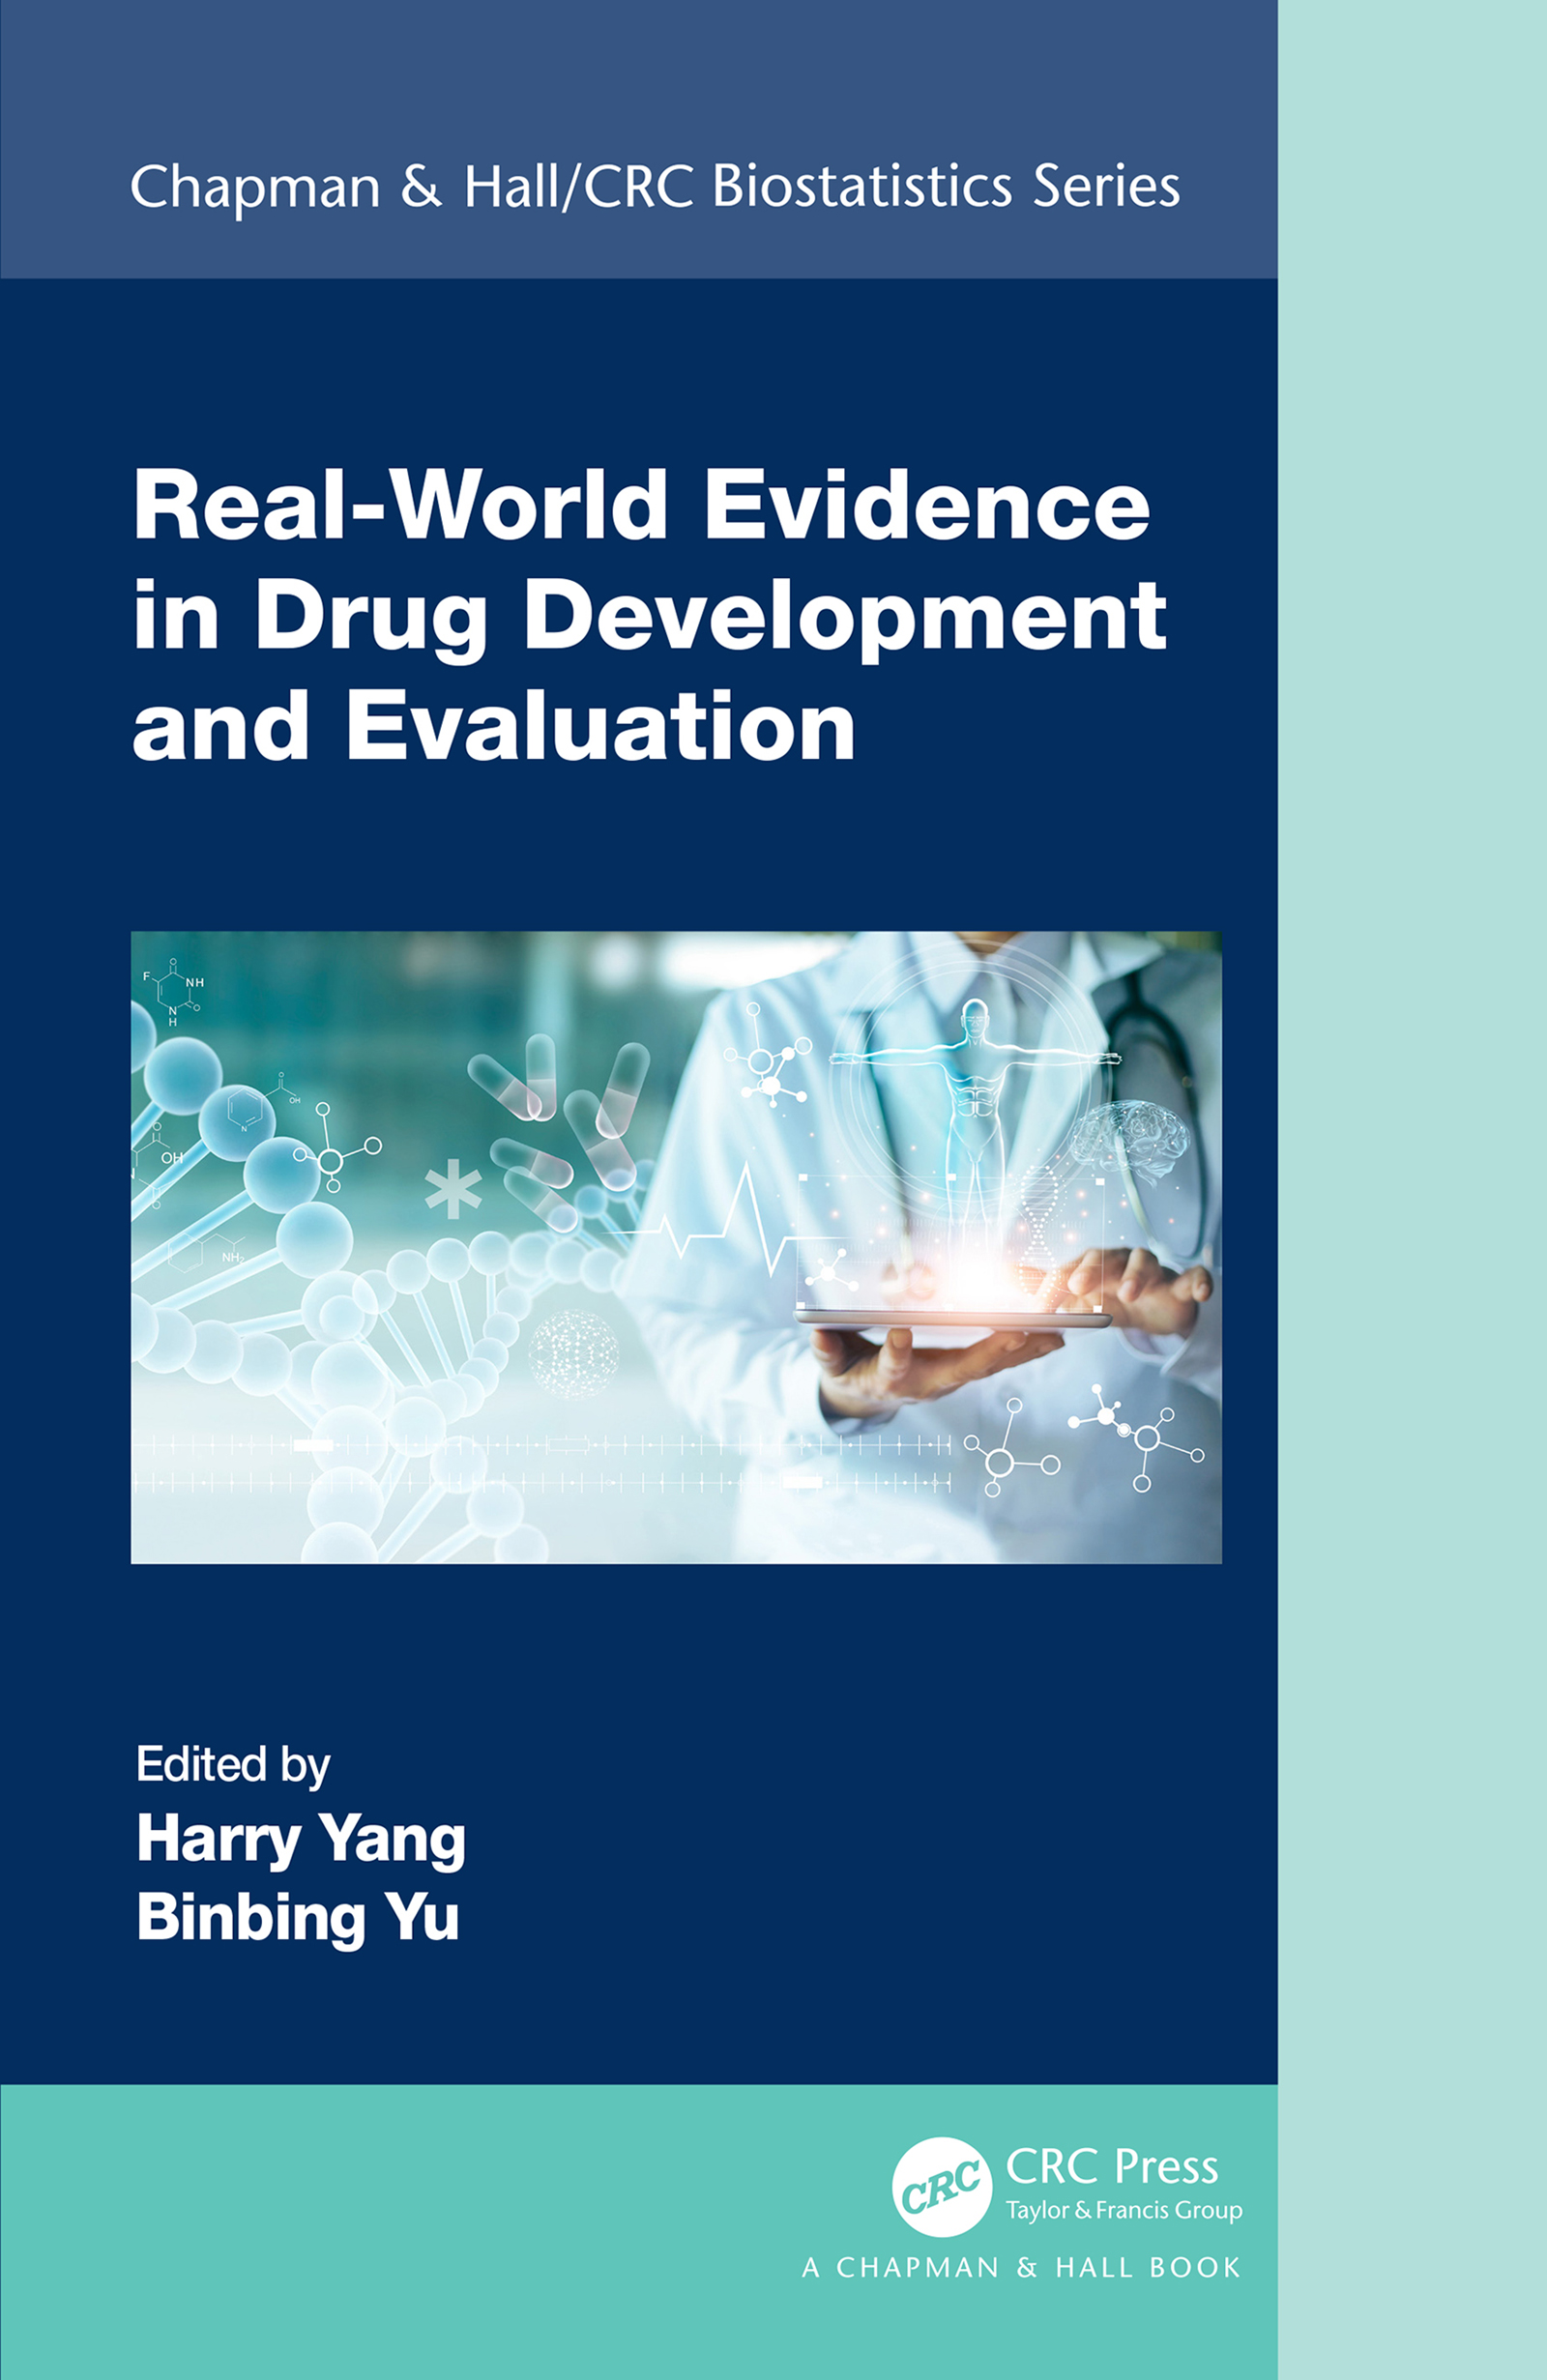 Real-World Evidence in Drug Development and Evaluation